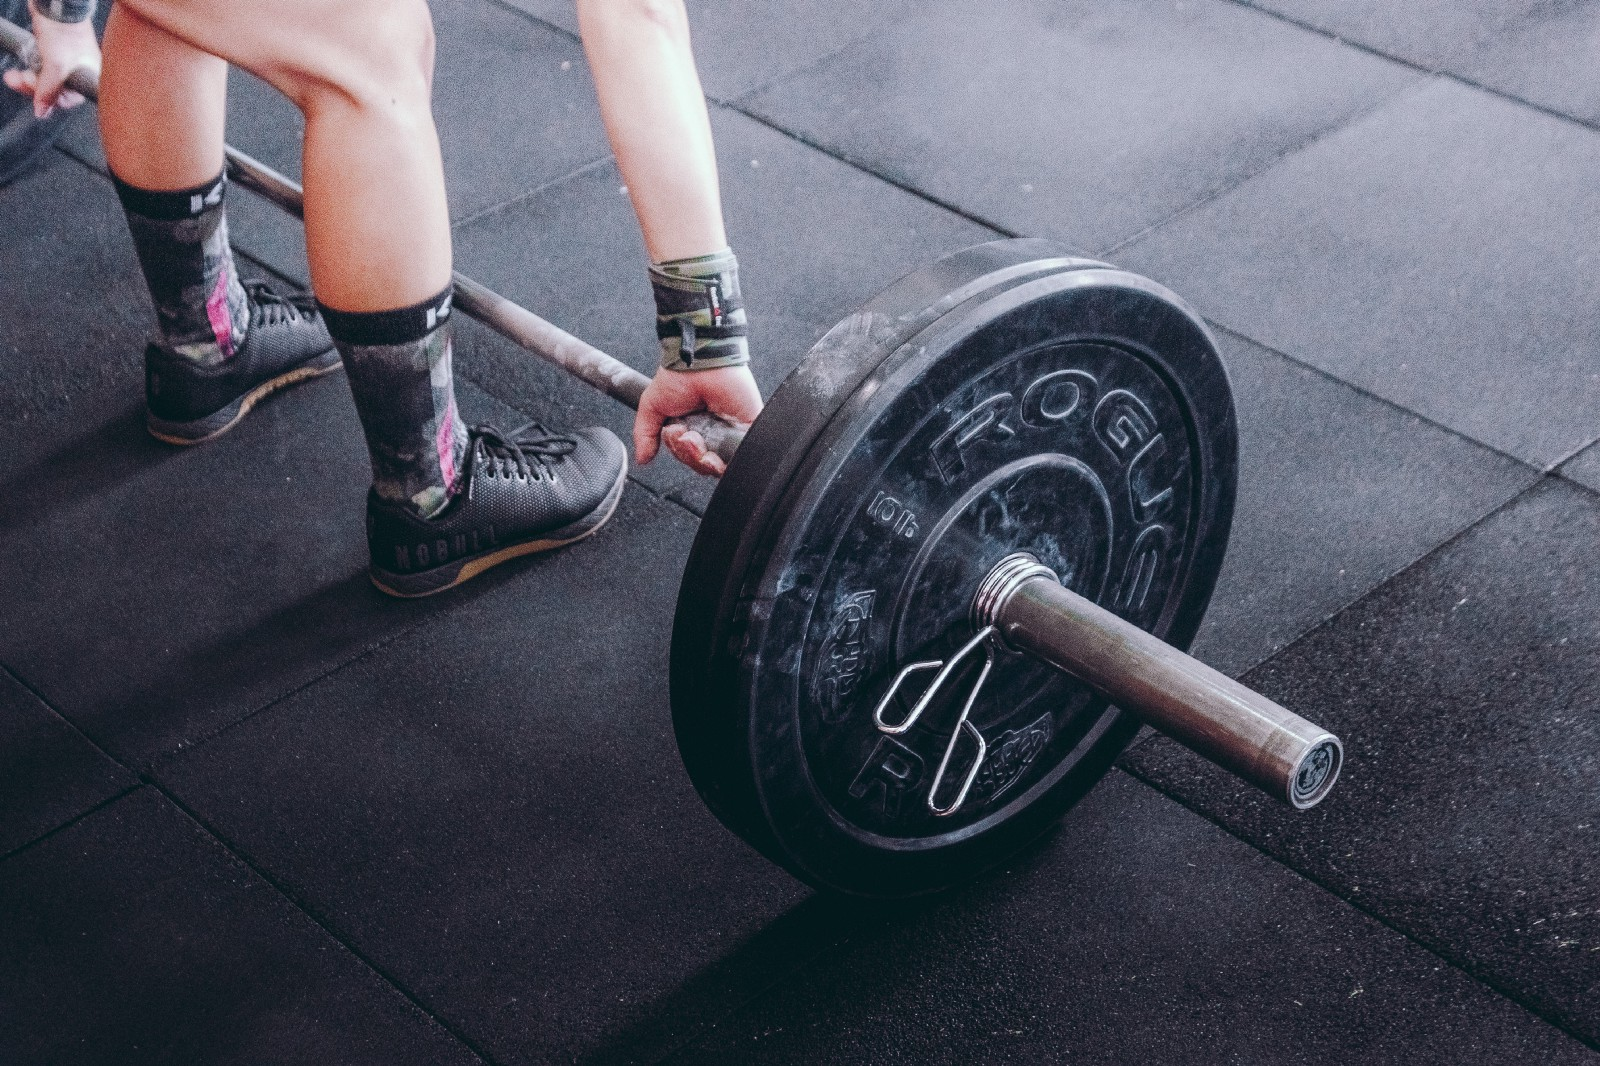 lifting weights helps ease anxiety and depression personal growth